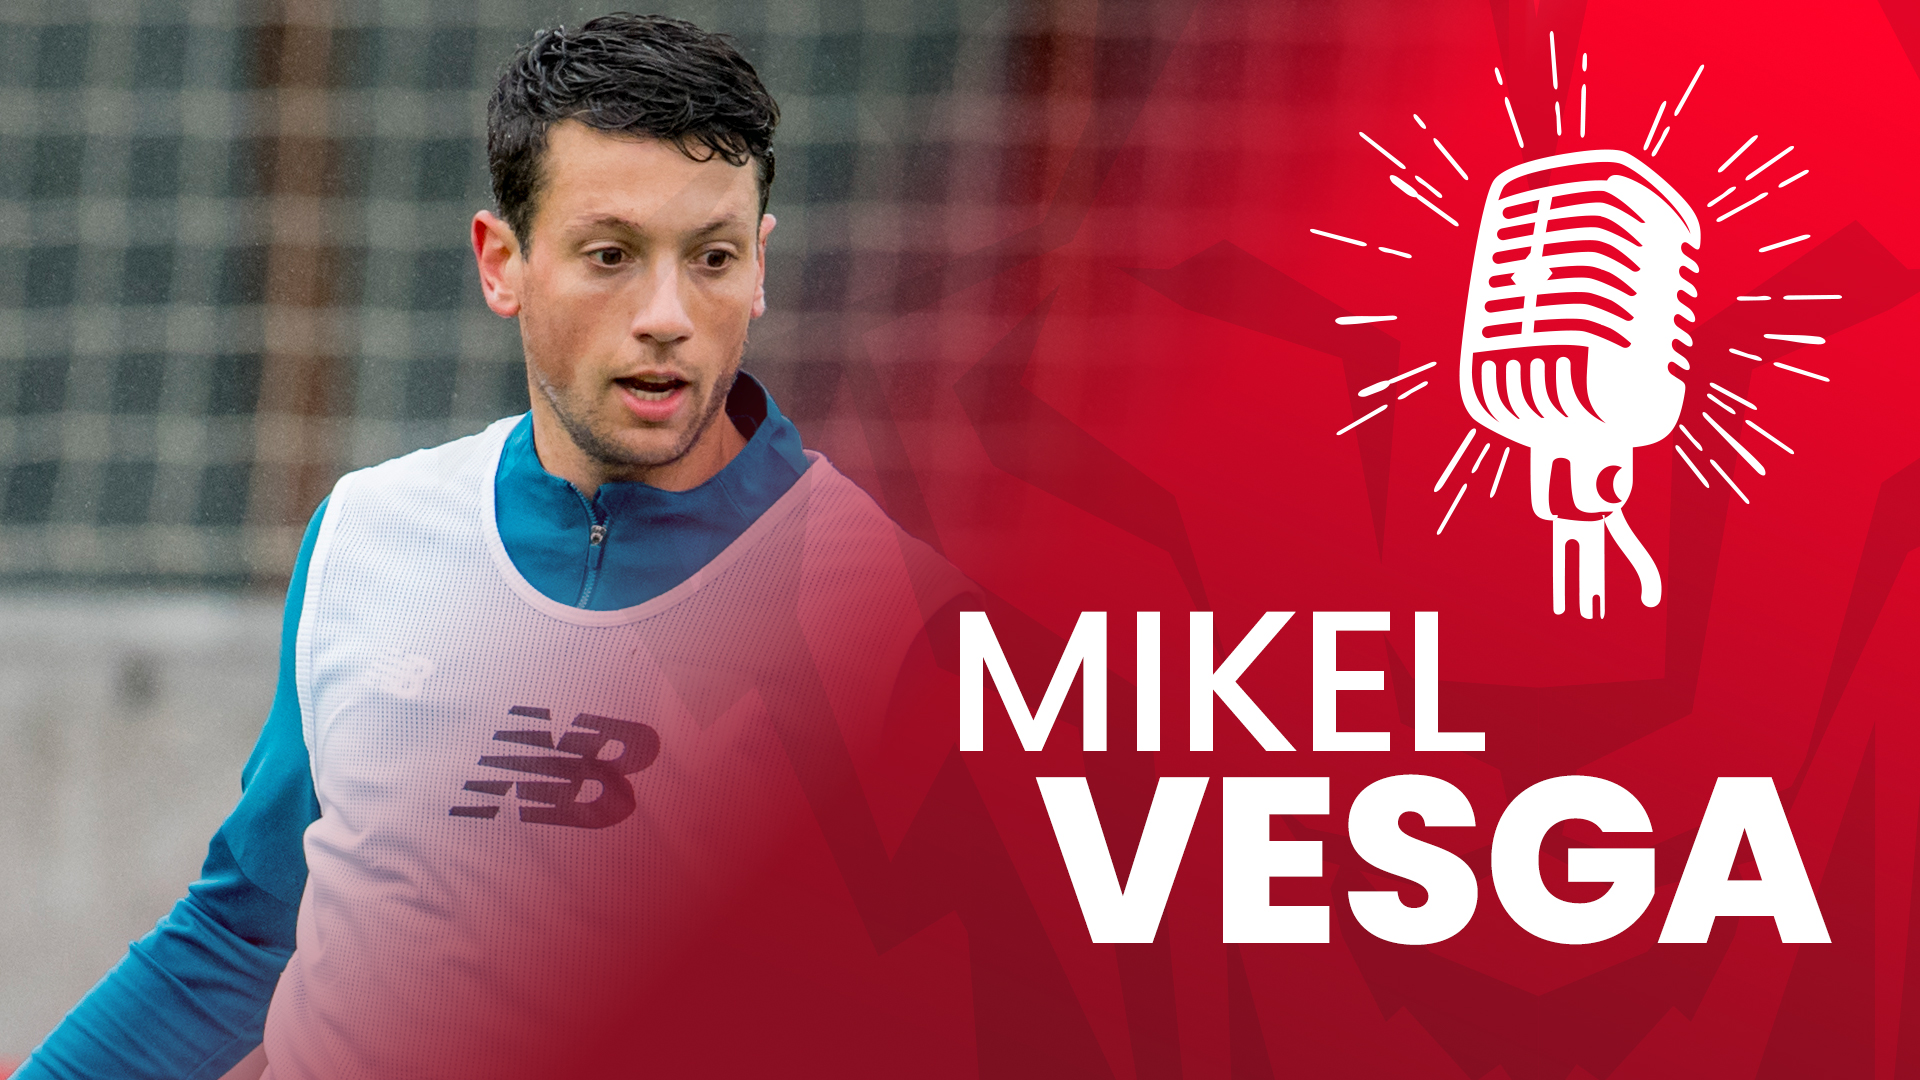 Watch: Mikel Vesga press conference